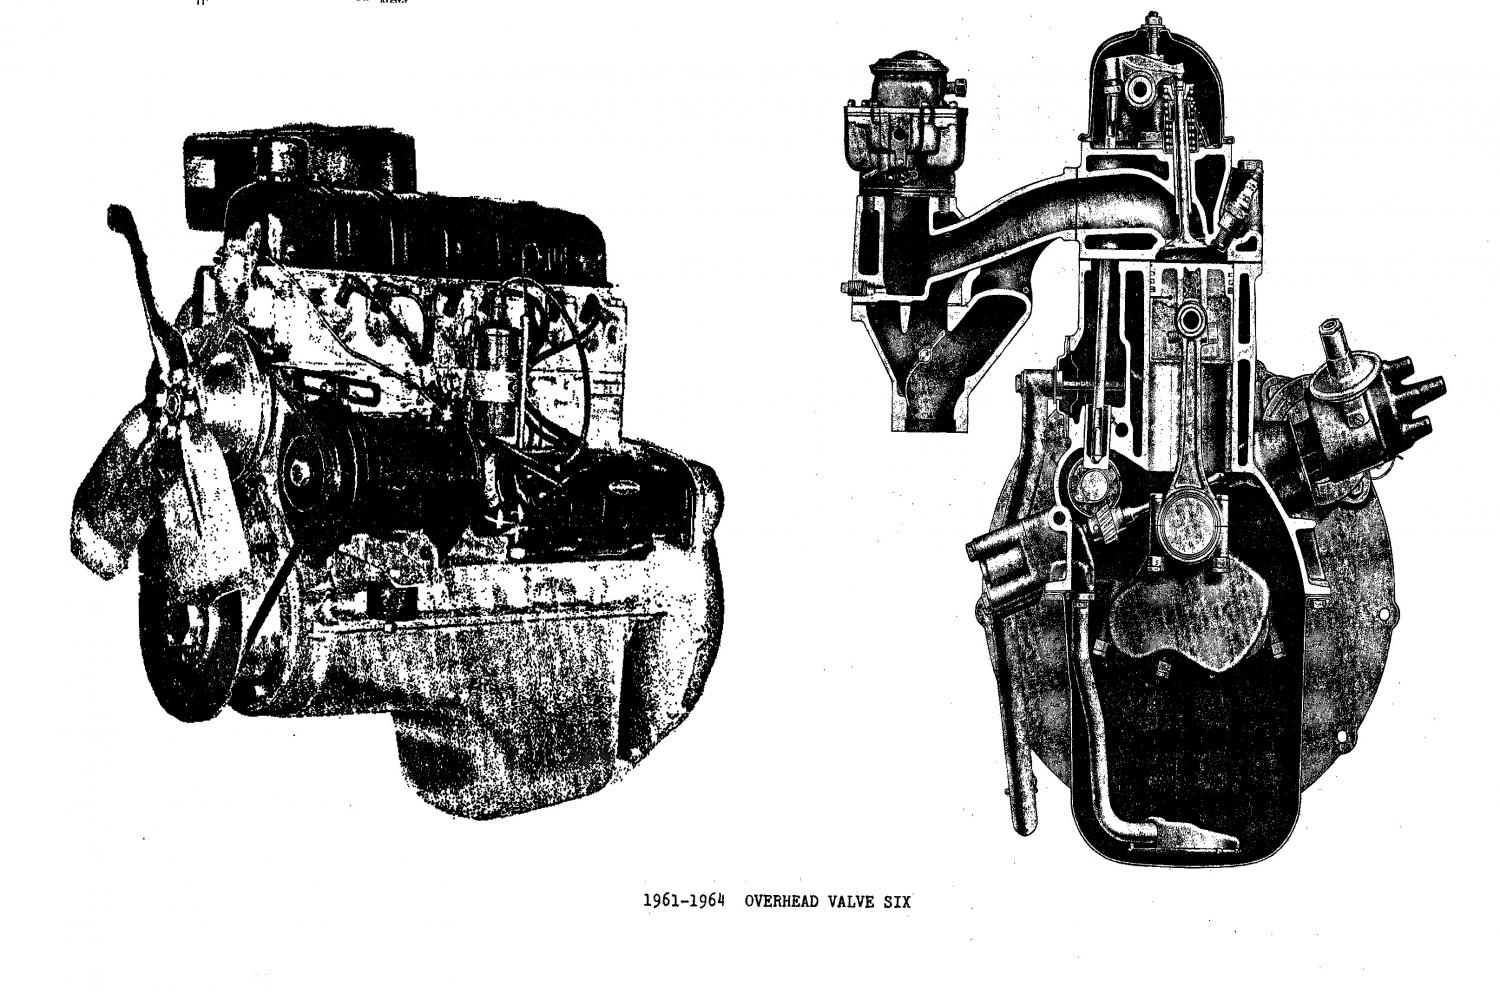 hight resolution of in 1961 the l head 169 6 cubic inch engine was converted to overhead valve improving the breathing through larger valves and better manifolding